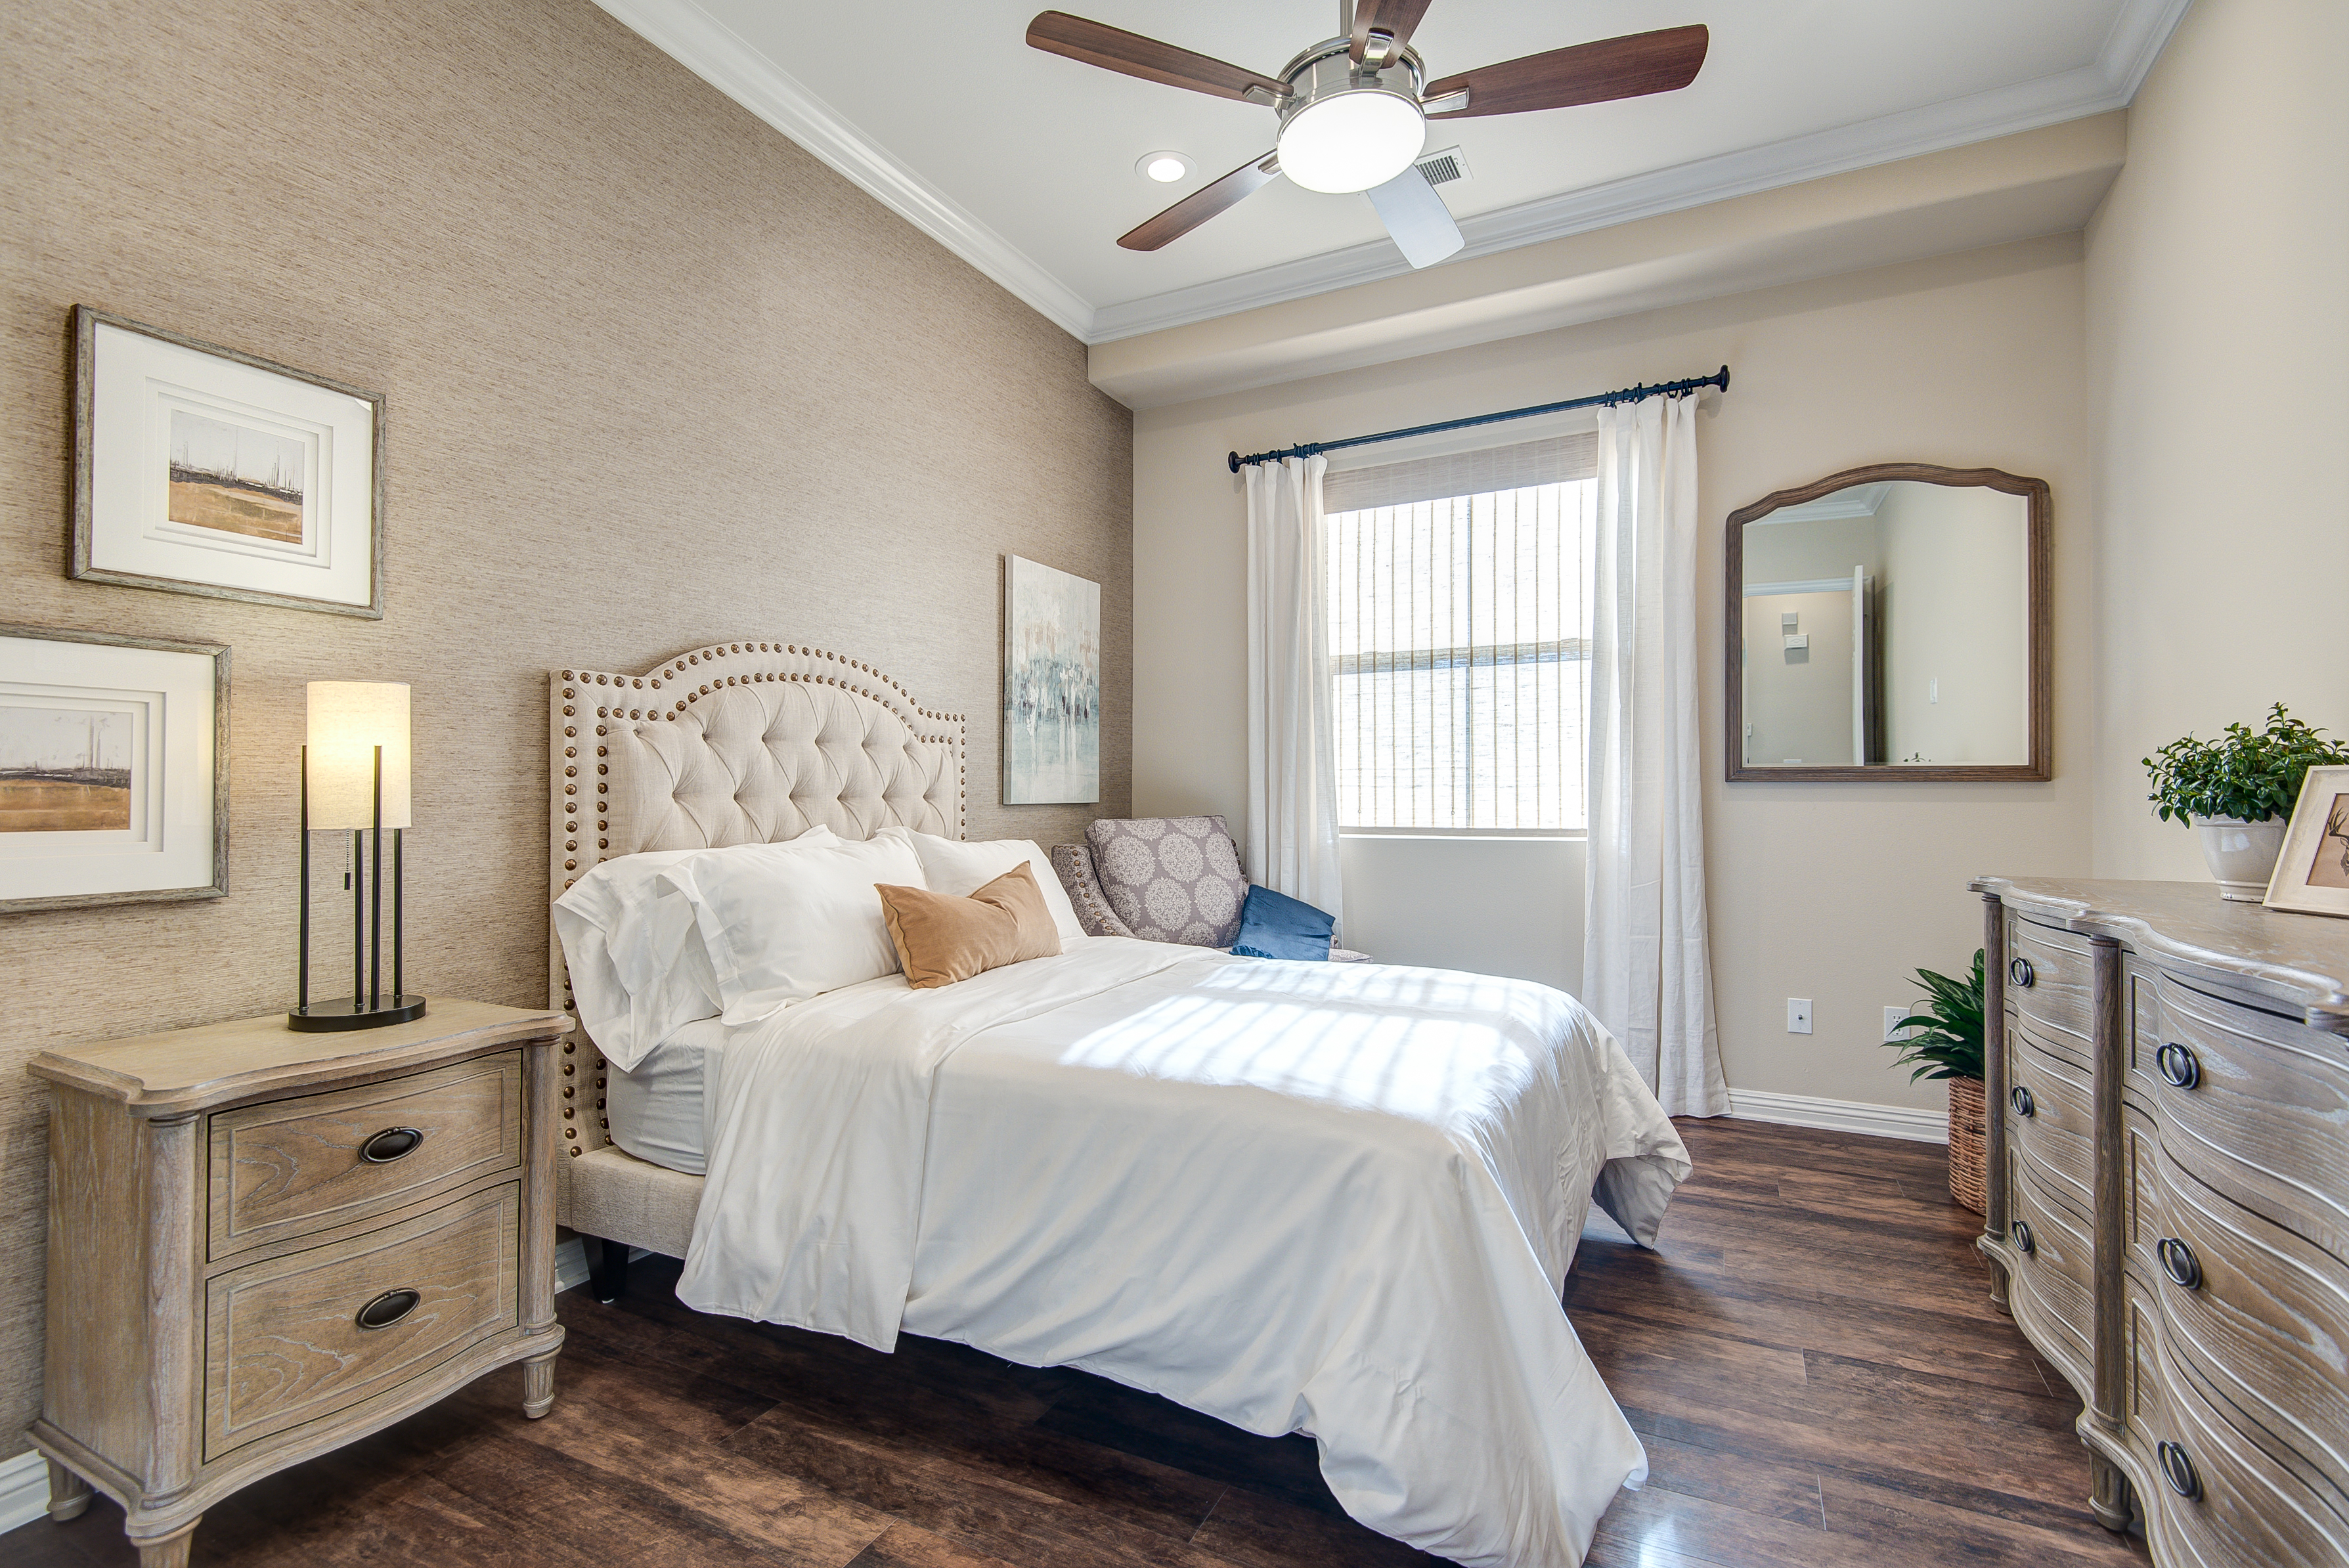 Bedroom 3a - Adagio San Juan Assisted Living Home